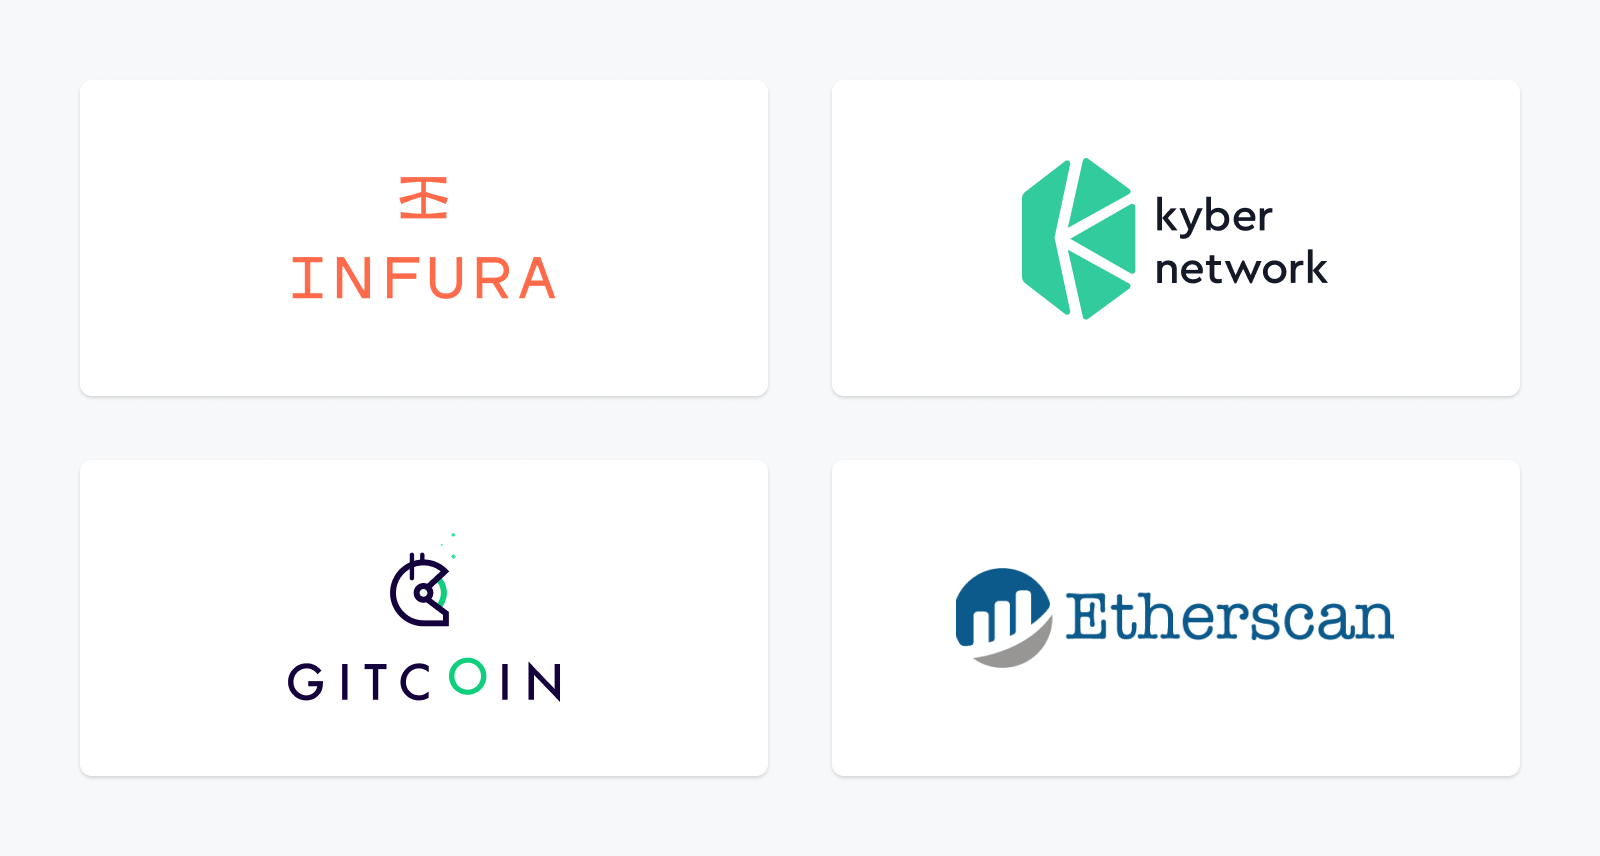 Light Feeds for Maker Oracles are provided by significant organizations in the Ethereum ecosystem.